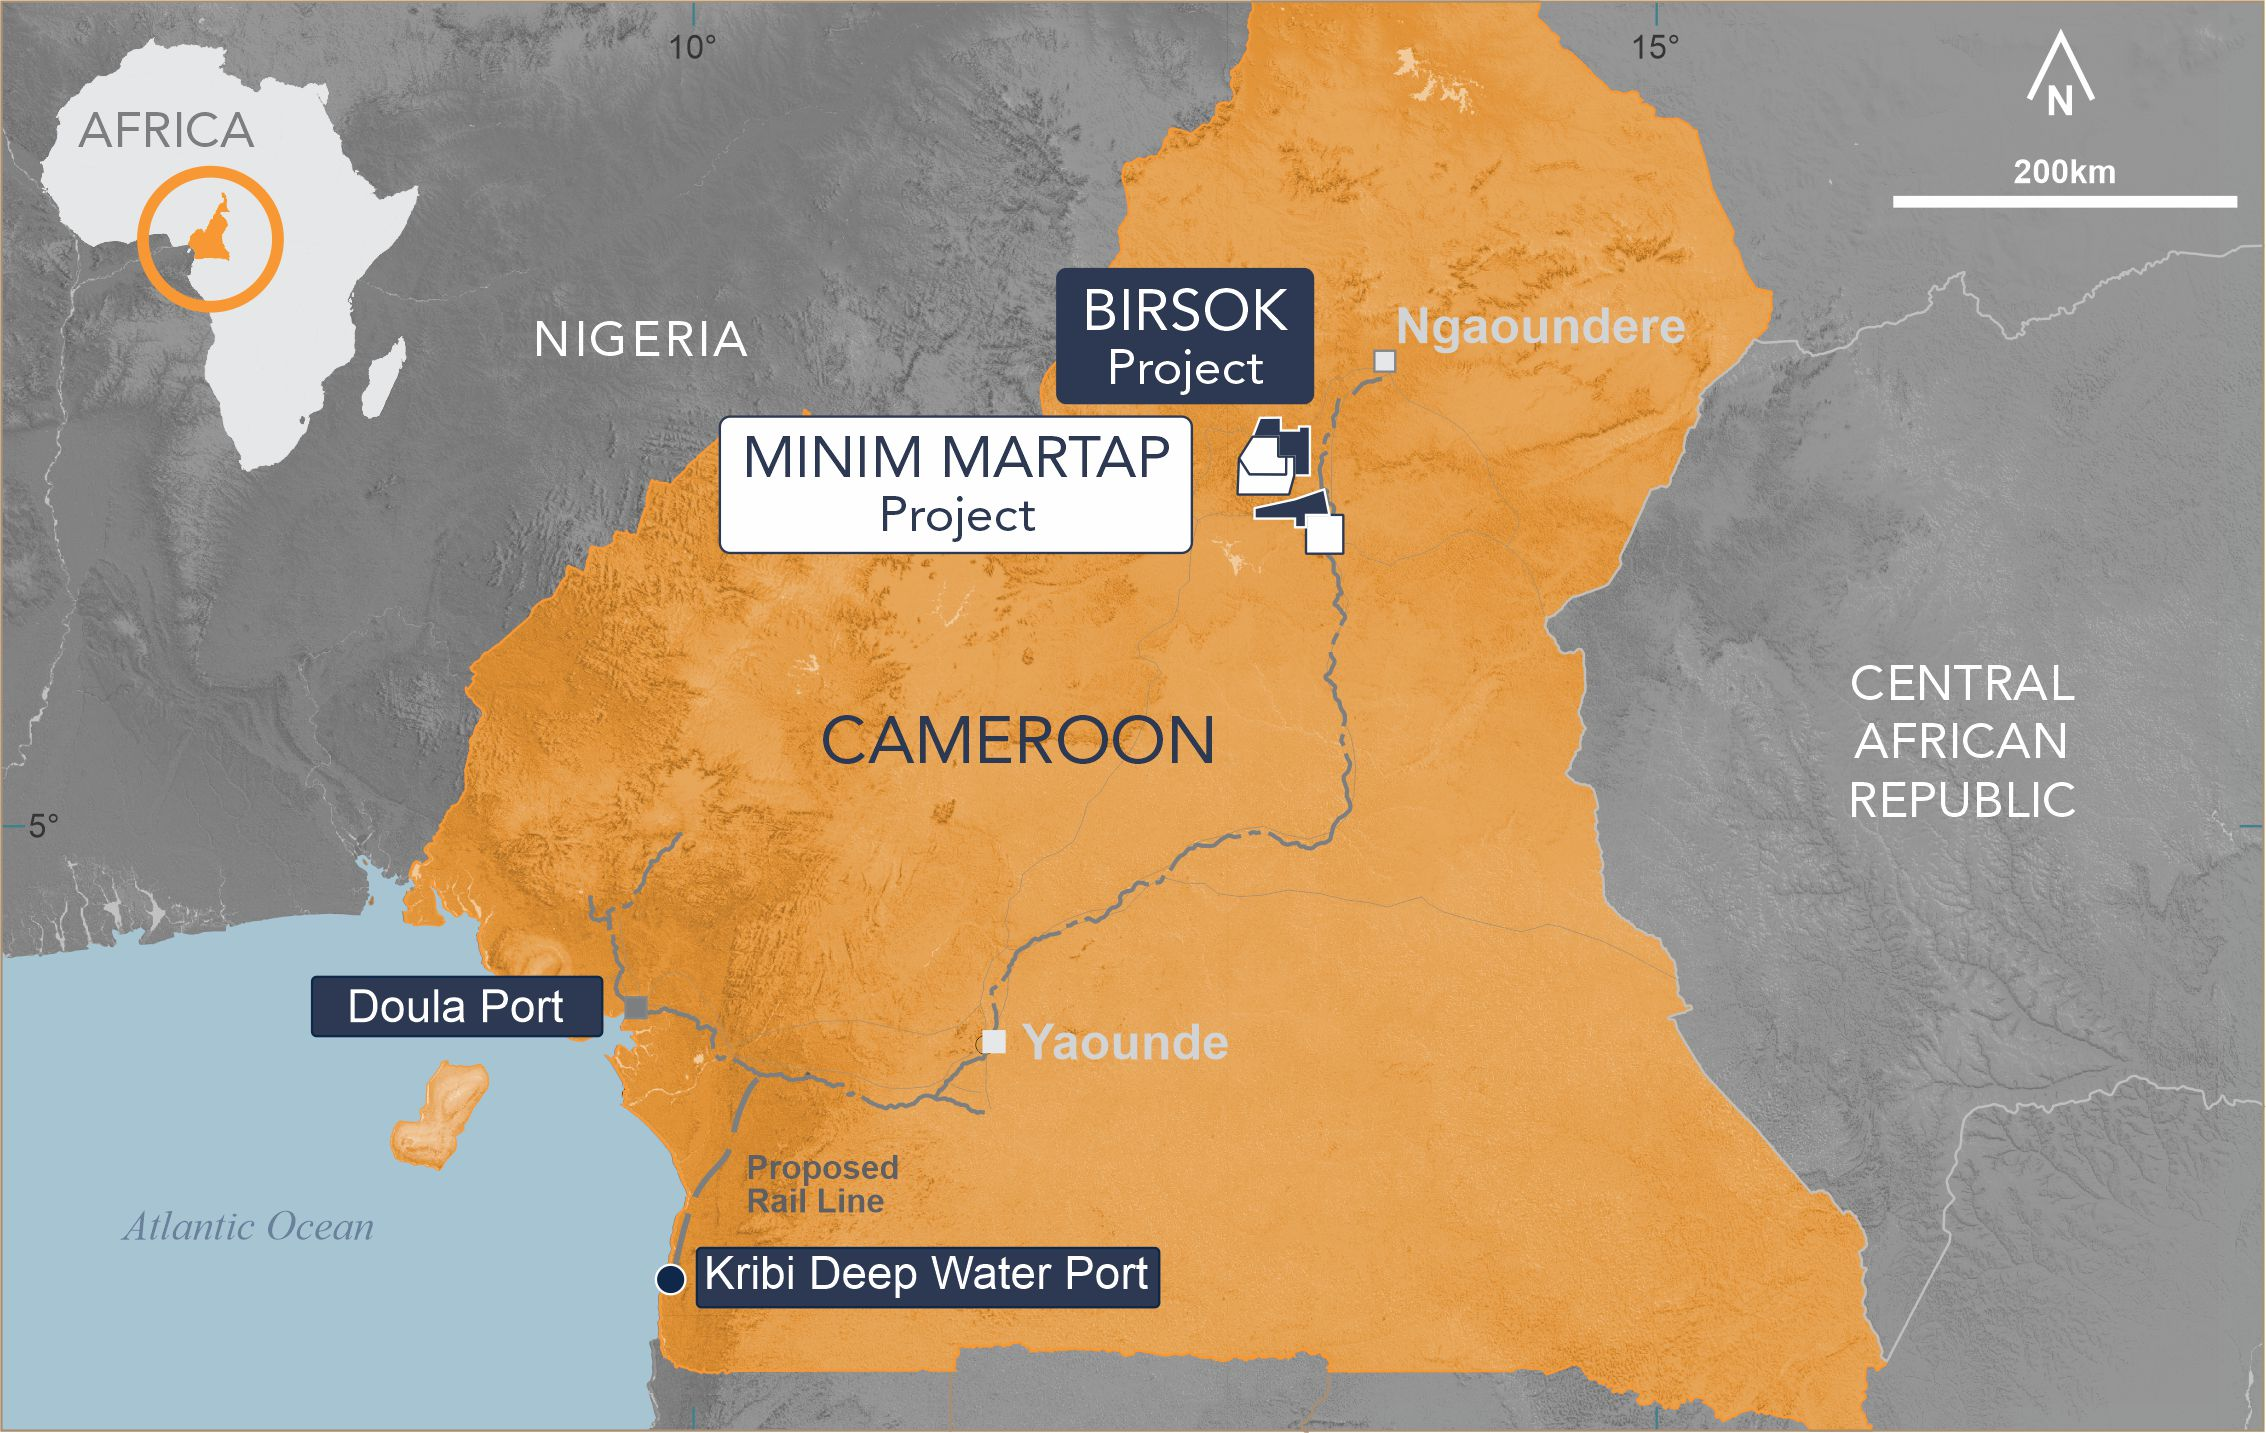 Cameroon Map Image FINAL.jpg